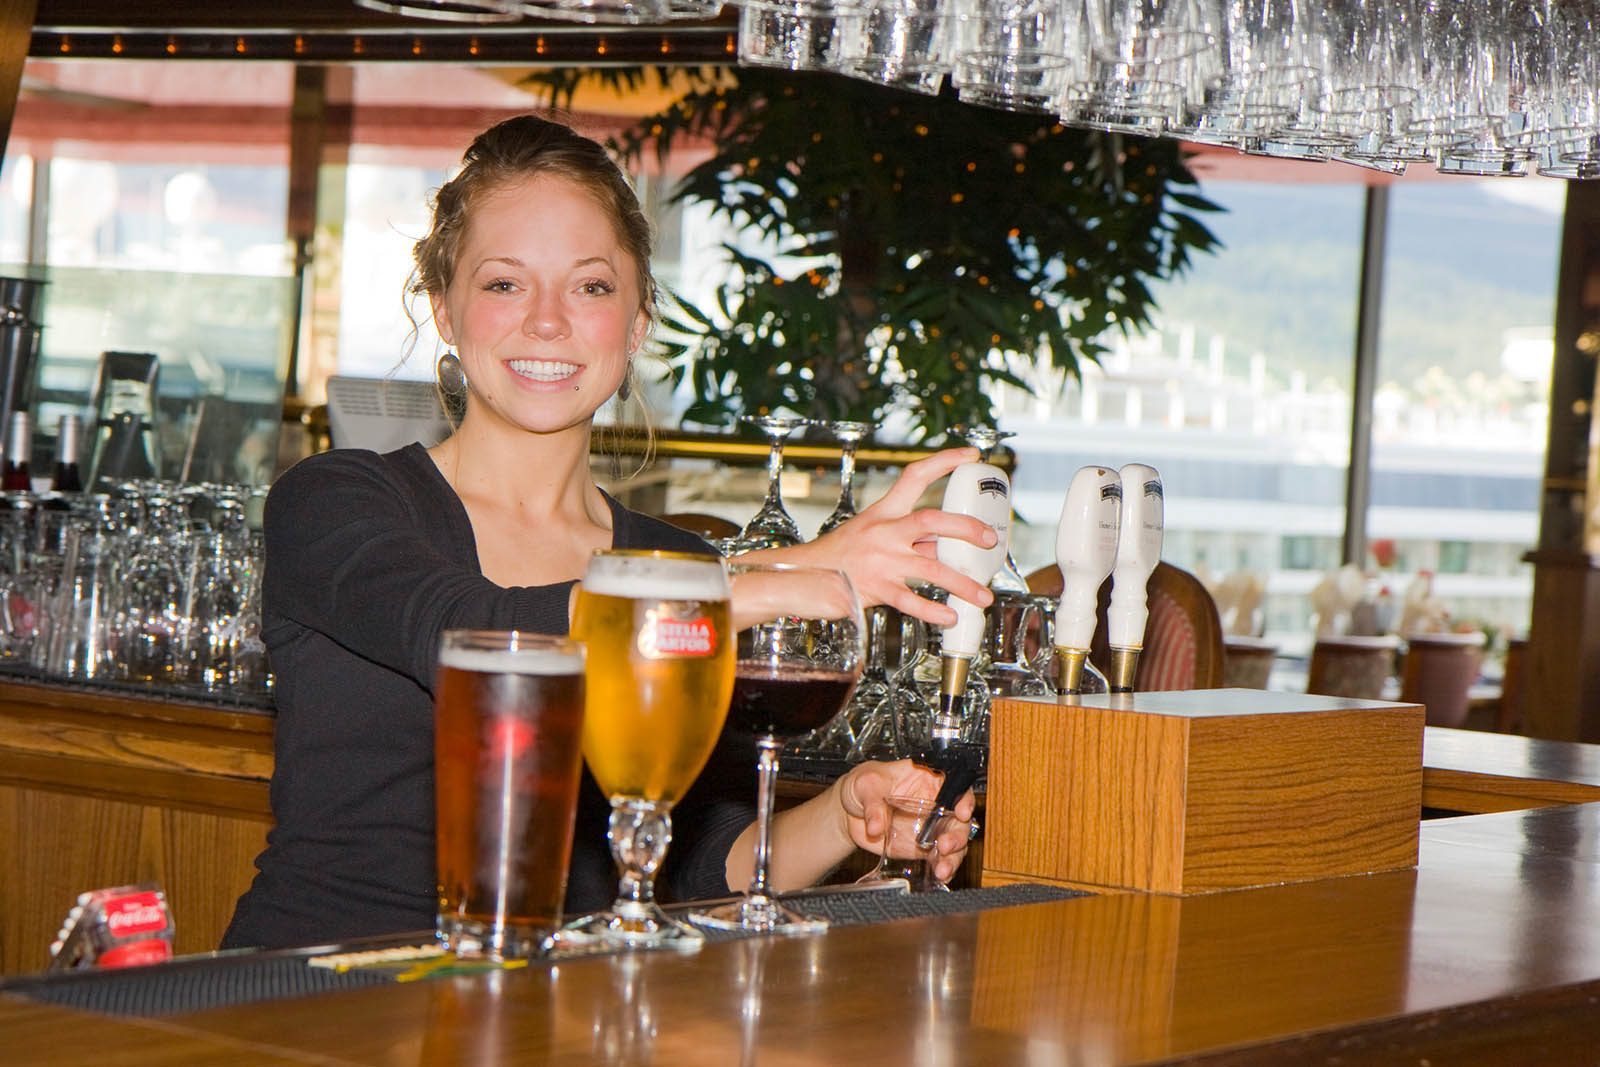 Bartender filling a glass from taps